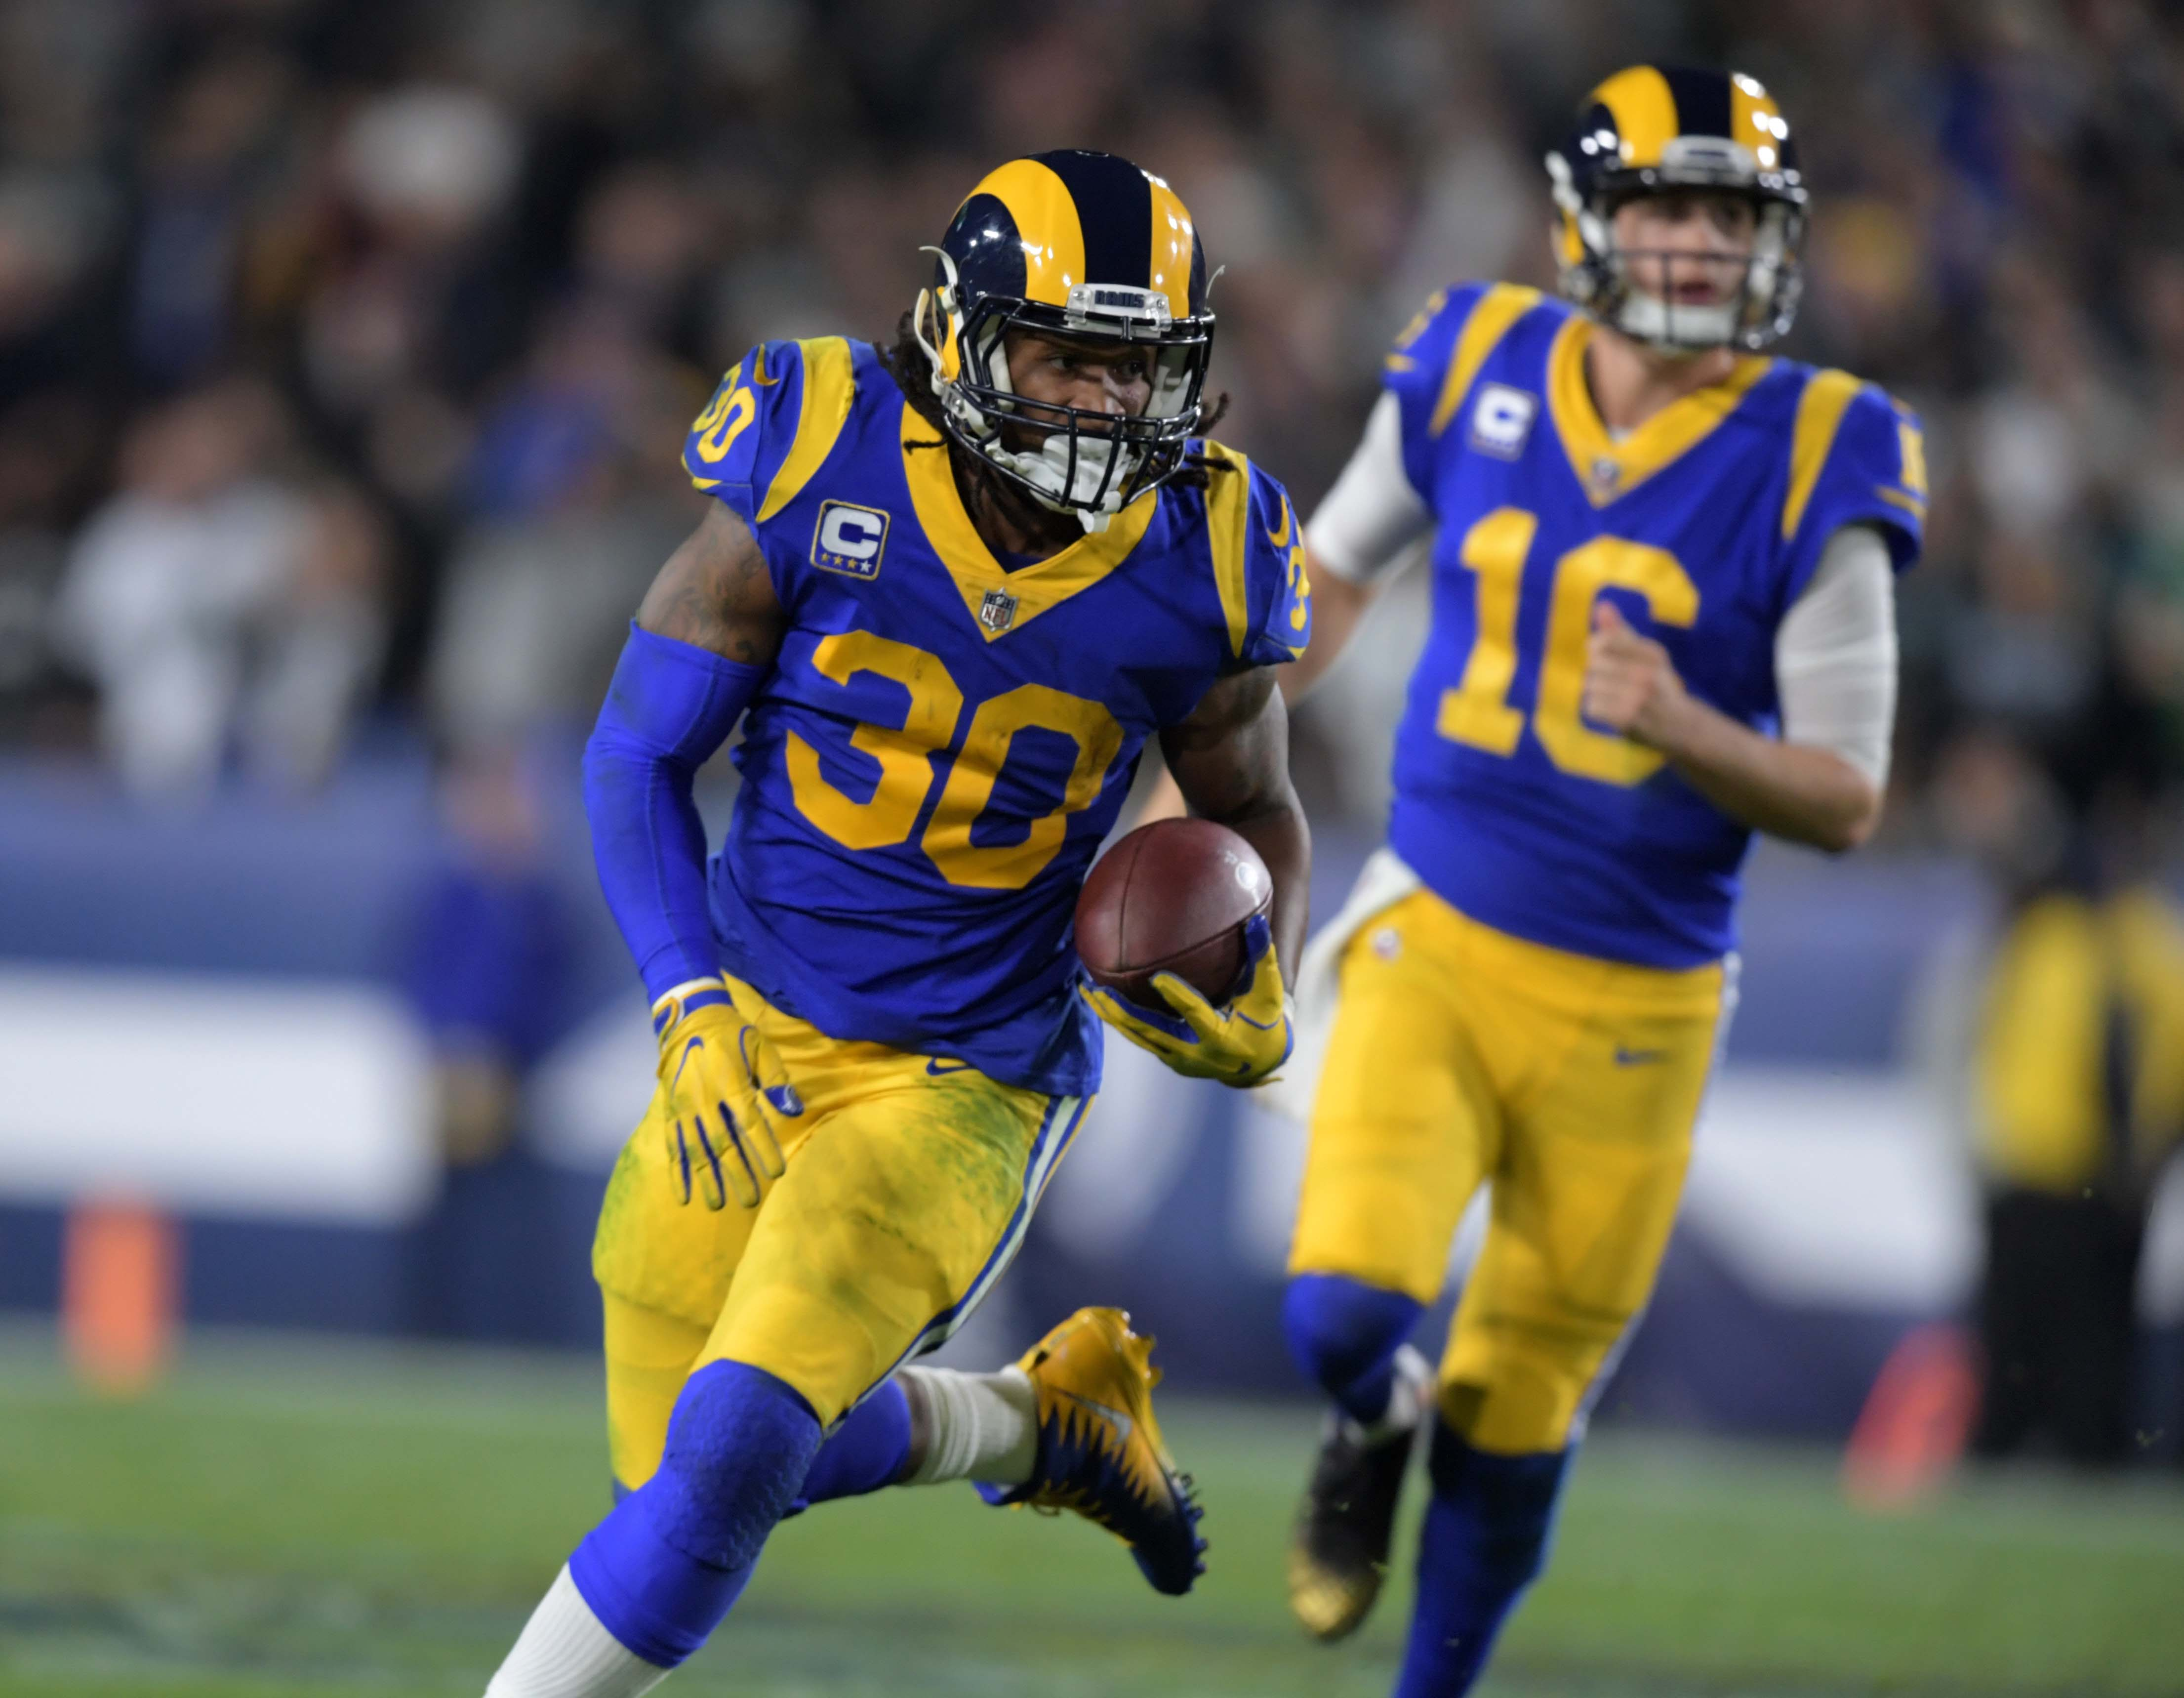 Los Angeles Rams RB Todd Gurley takes a handoff from QB Jared Goff against the Philadelphia Eagles, Dec. 16, 2018.